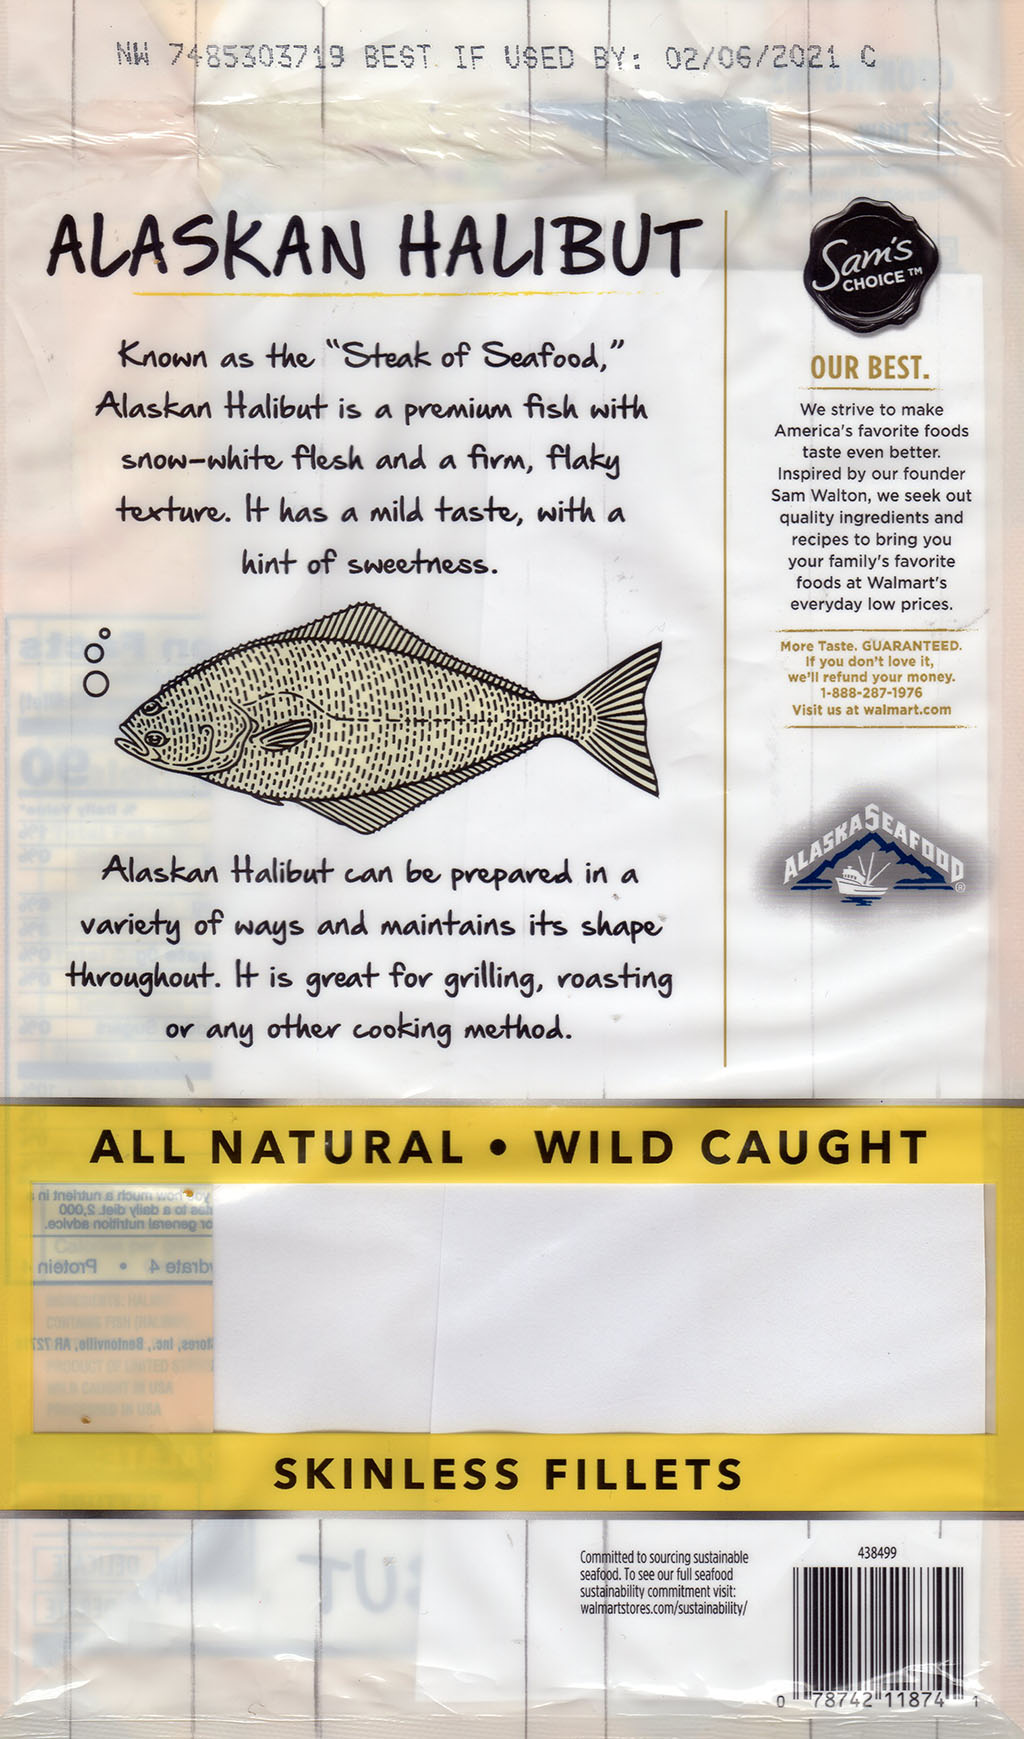 Sam's Choice Wild Caught Alaskan Halibut package front